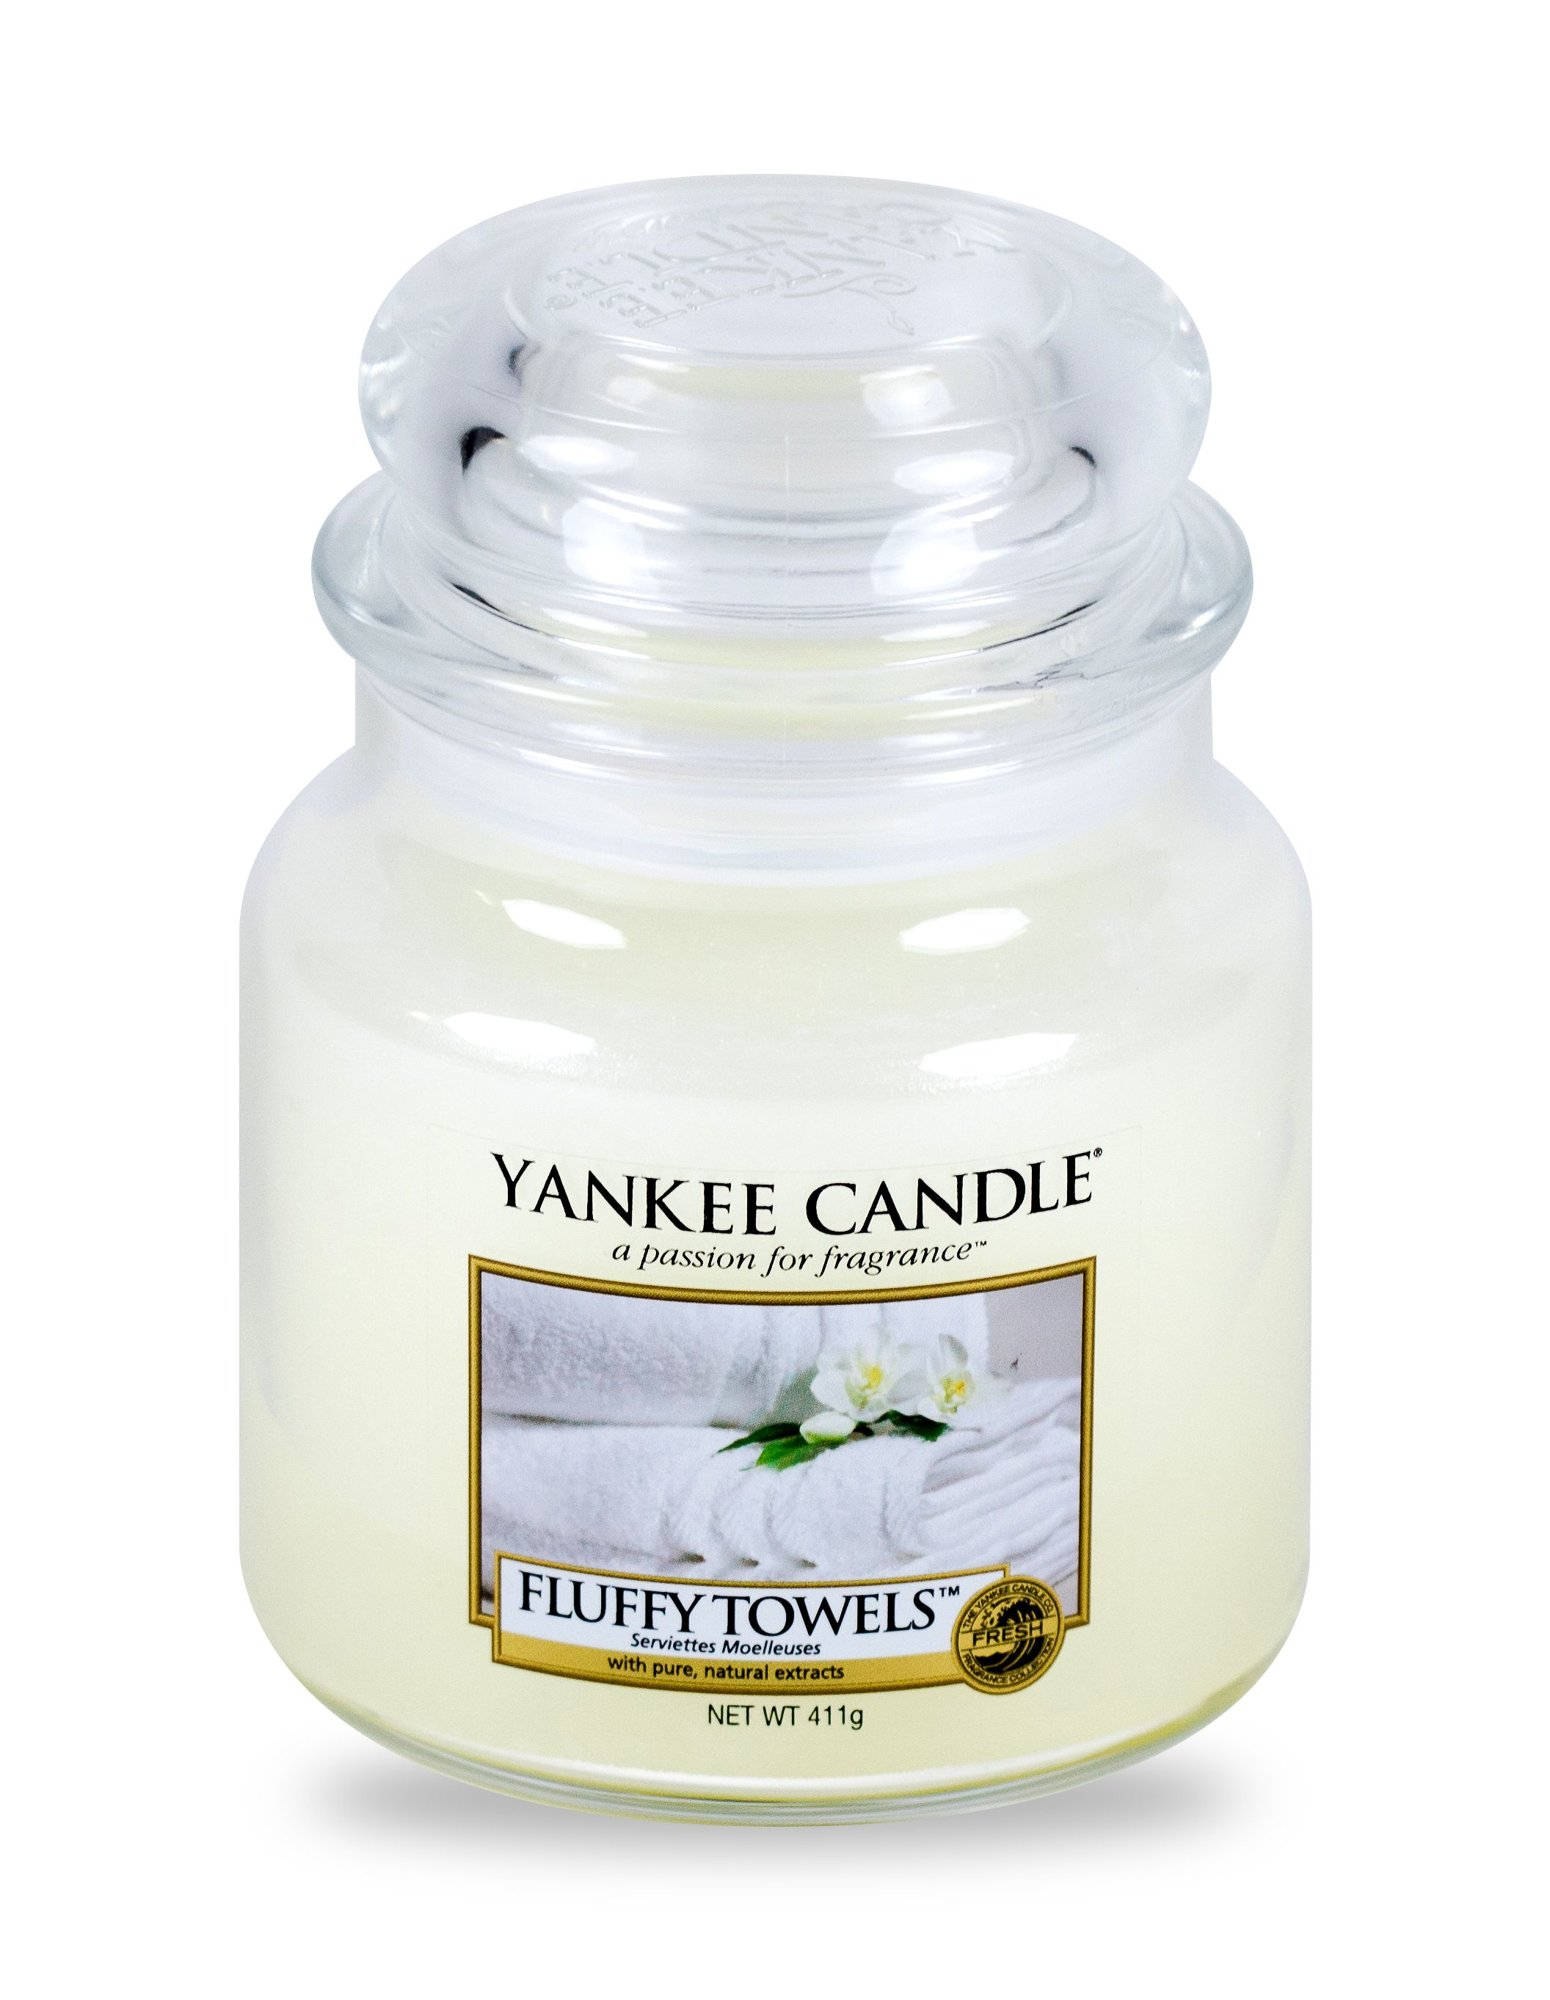 Yankee Candle Fluffy Towels Scented Candle 411ml